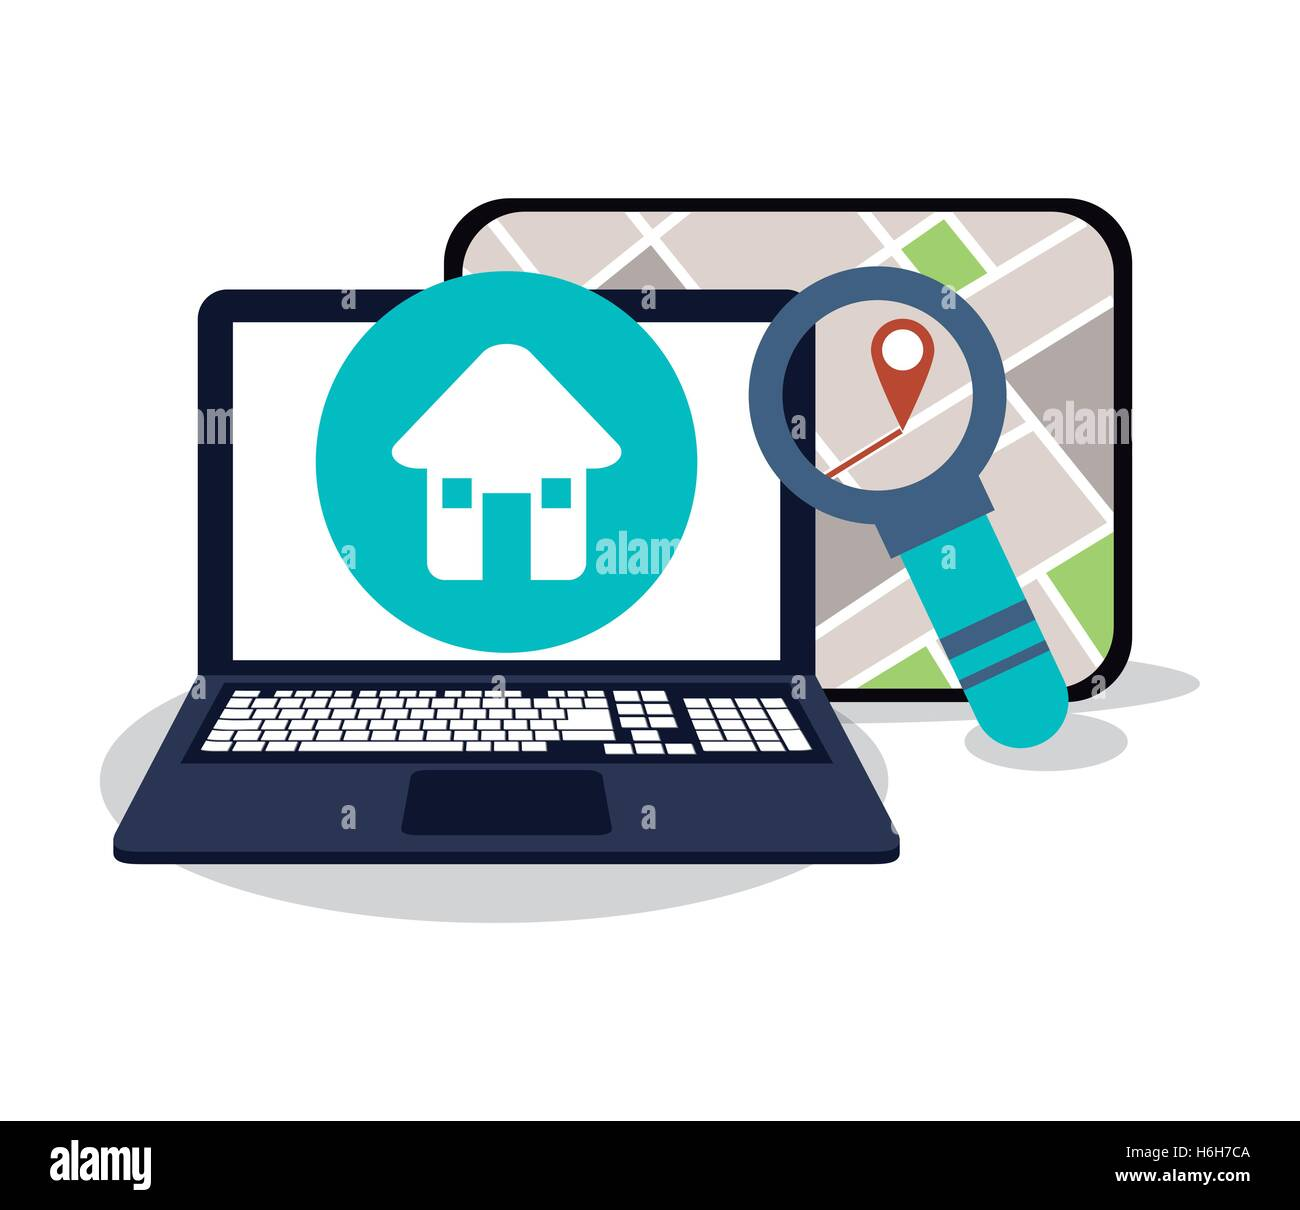 Laptop and gps map design - Stock Image